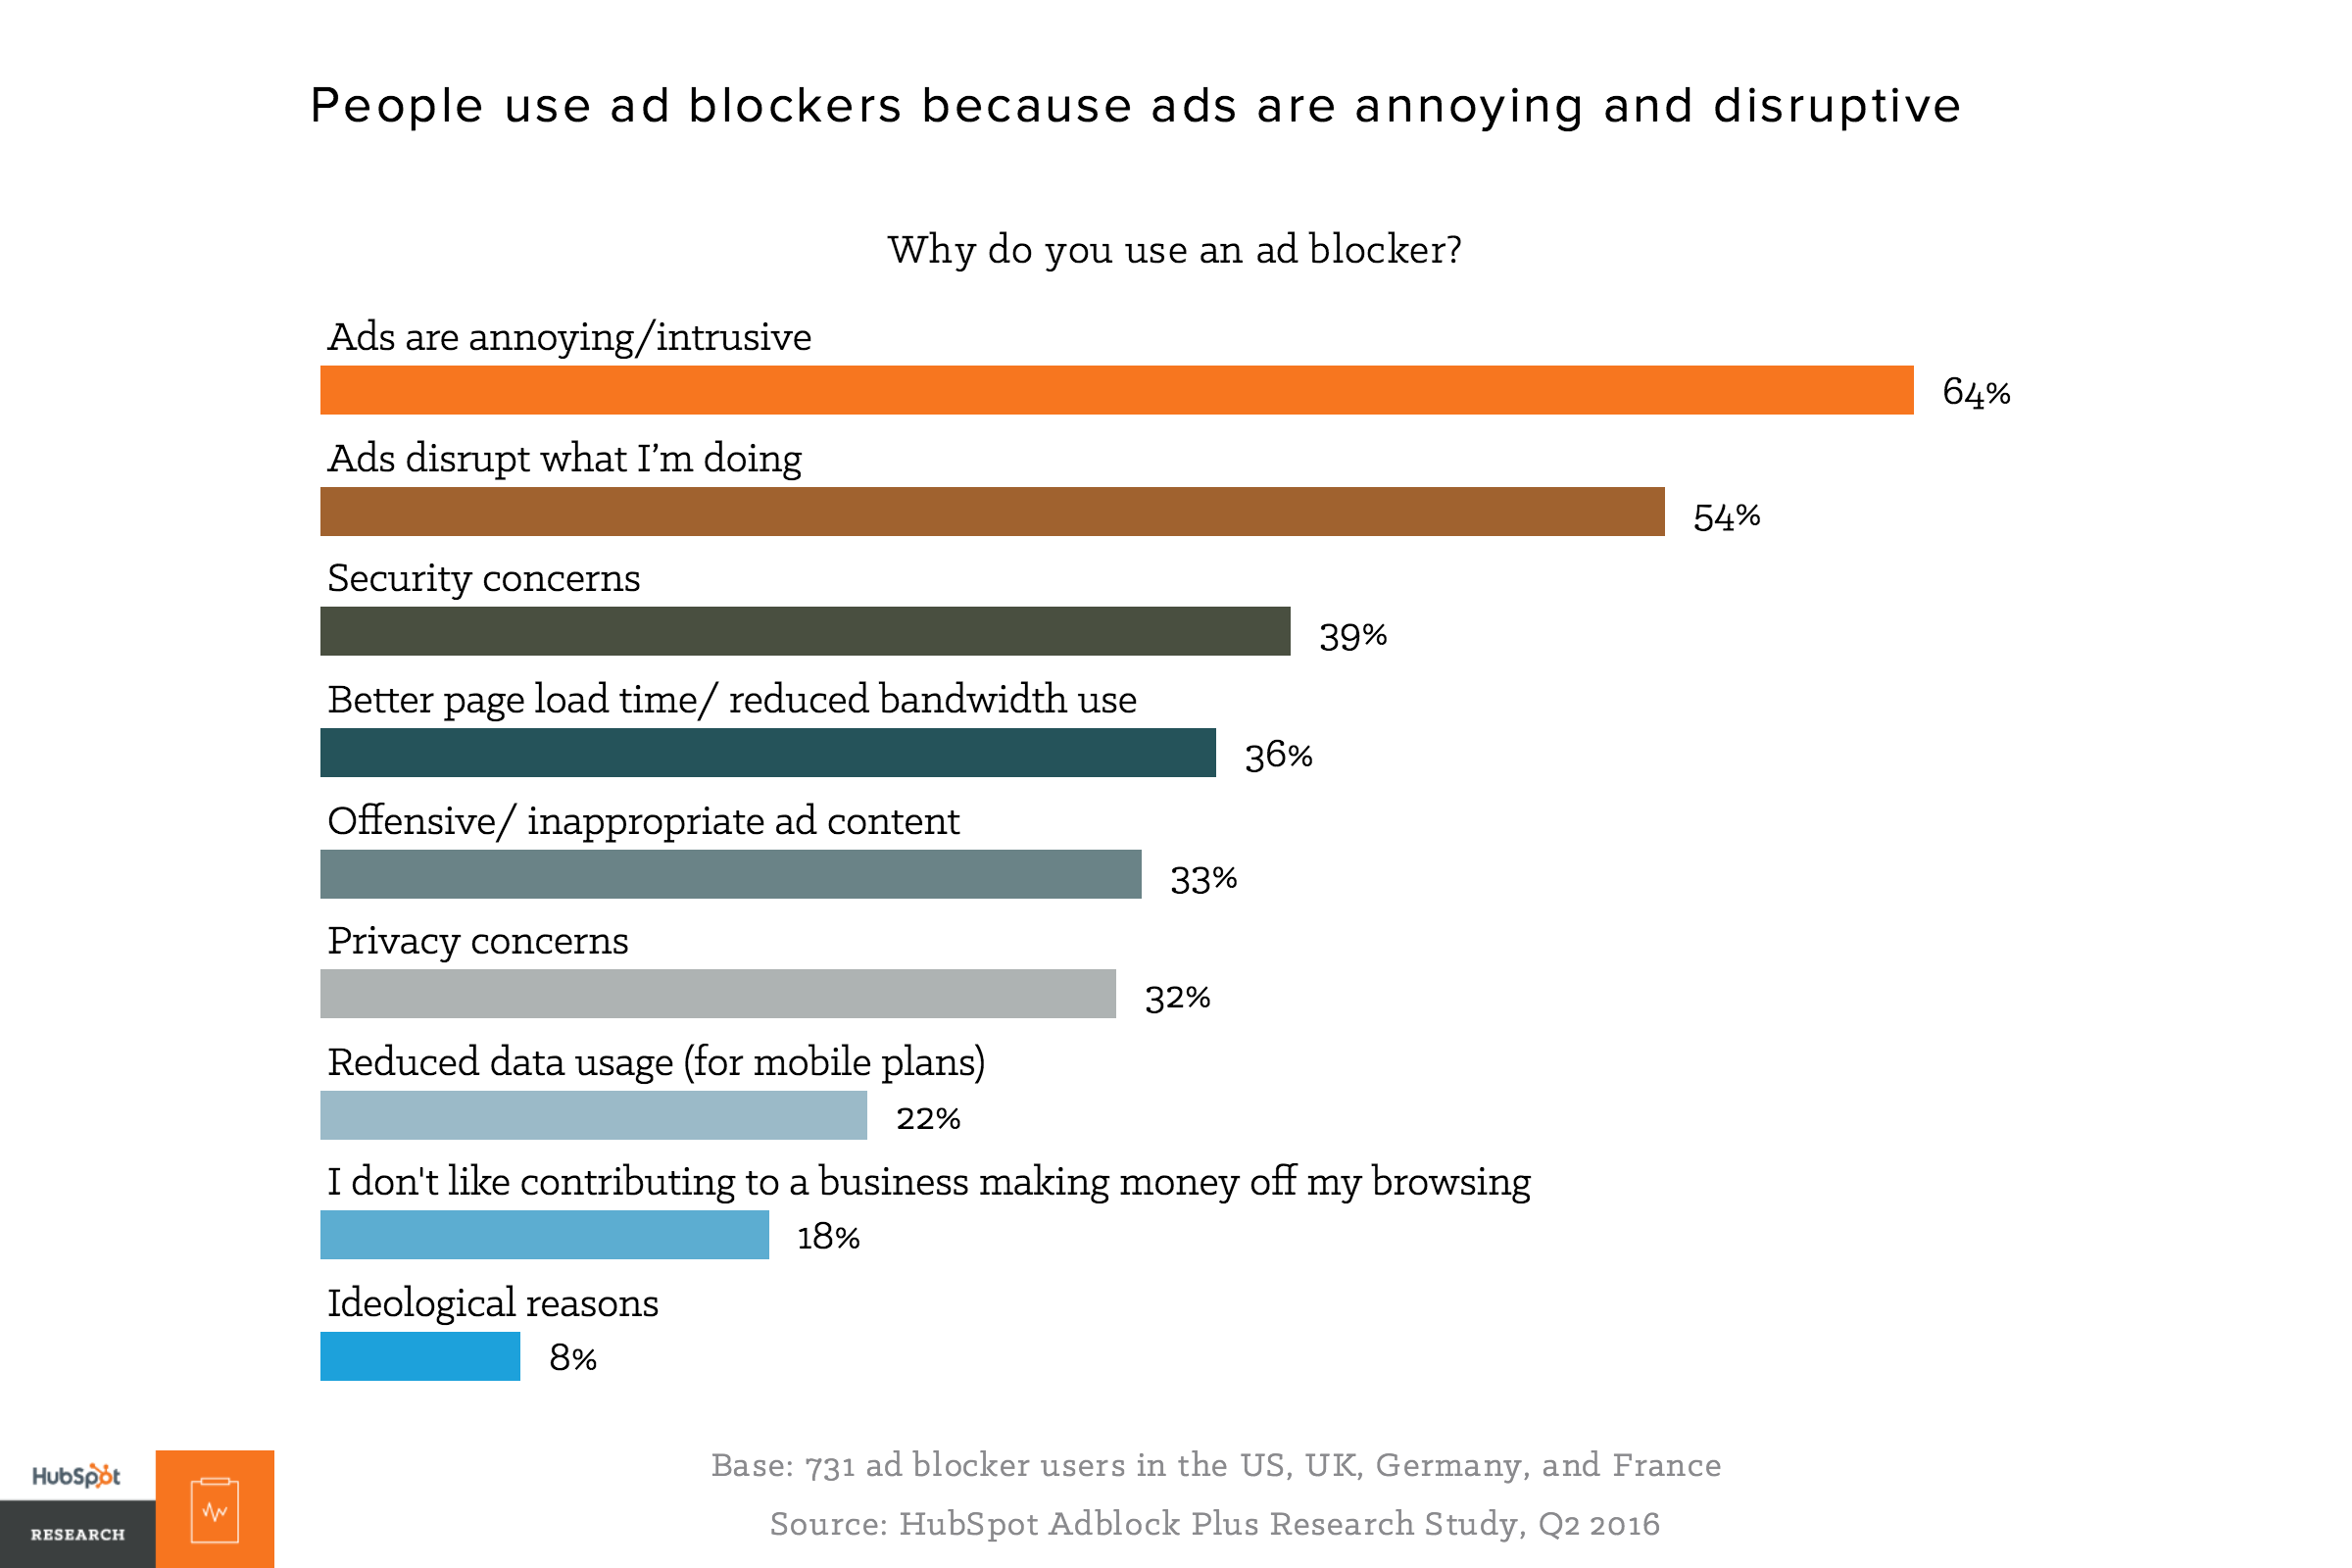 Why do you use an ad blocker ()